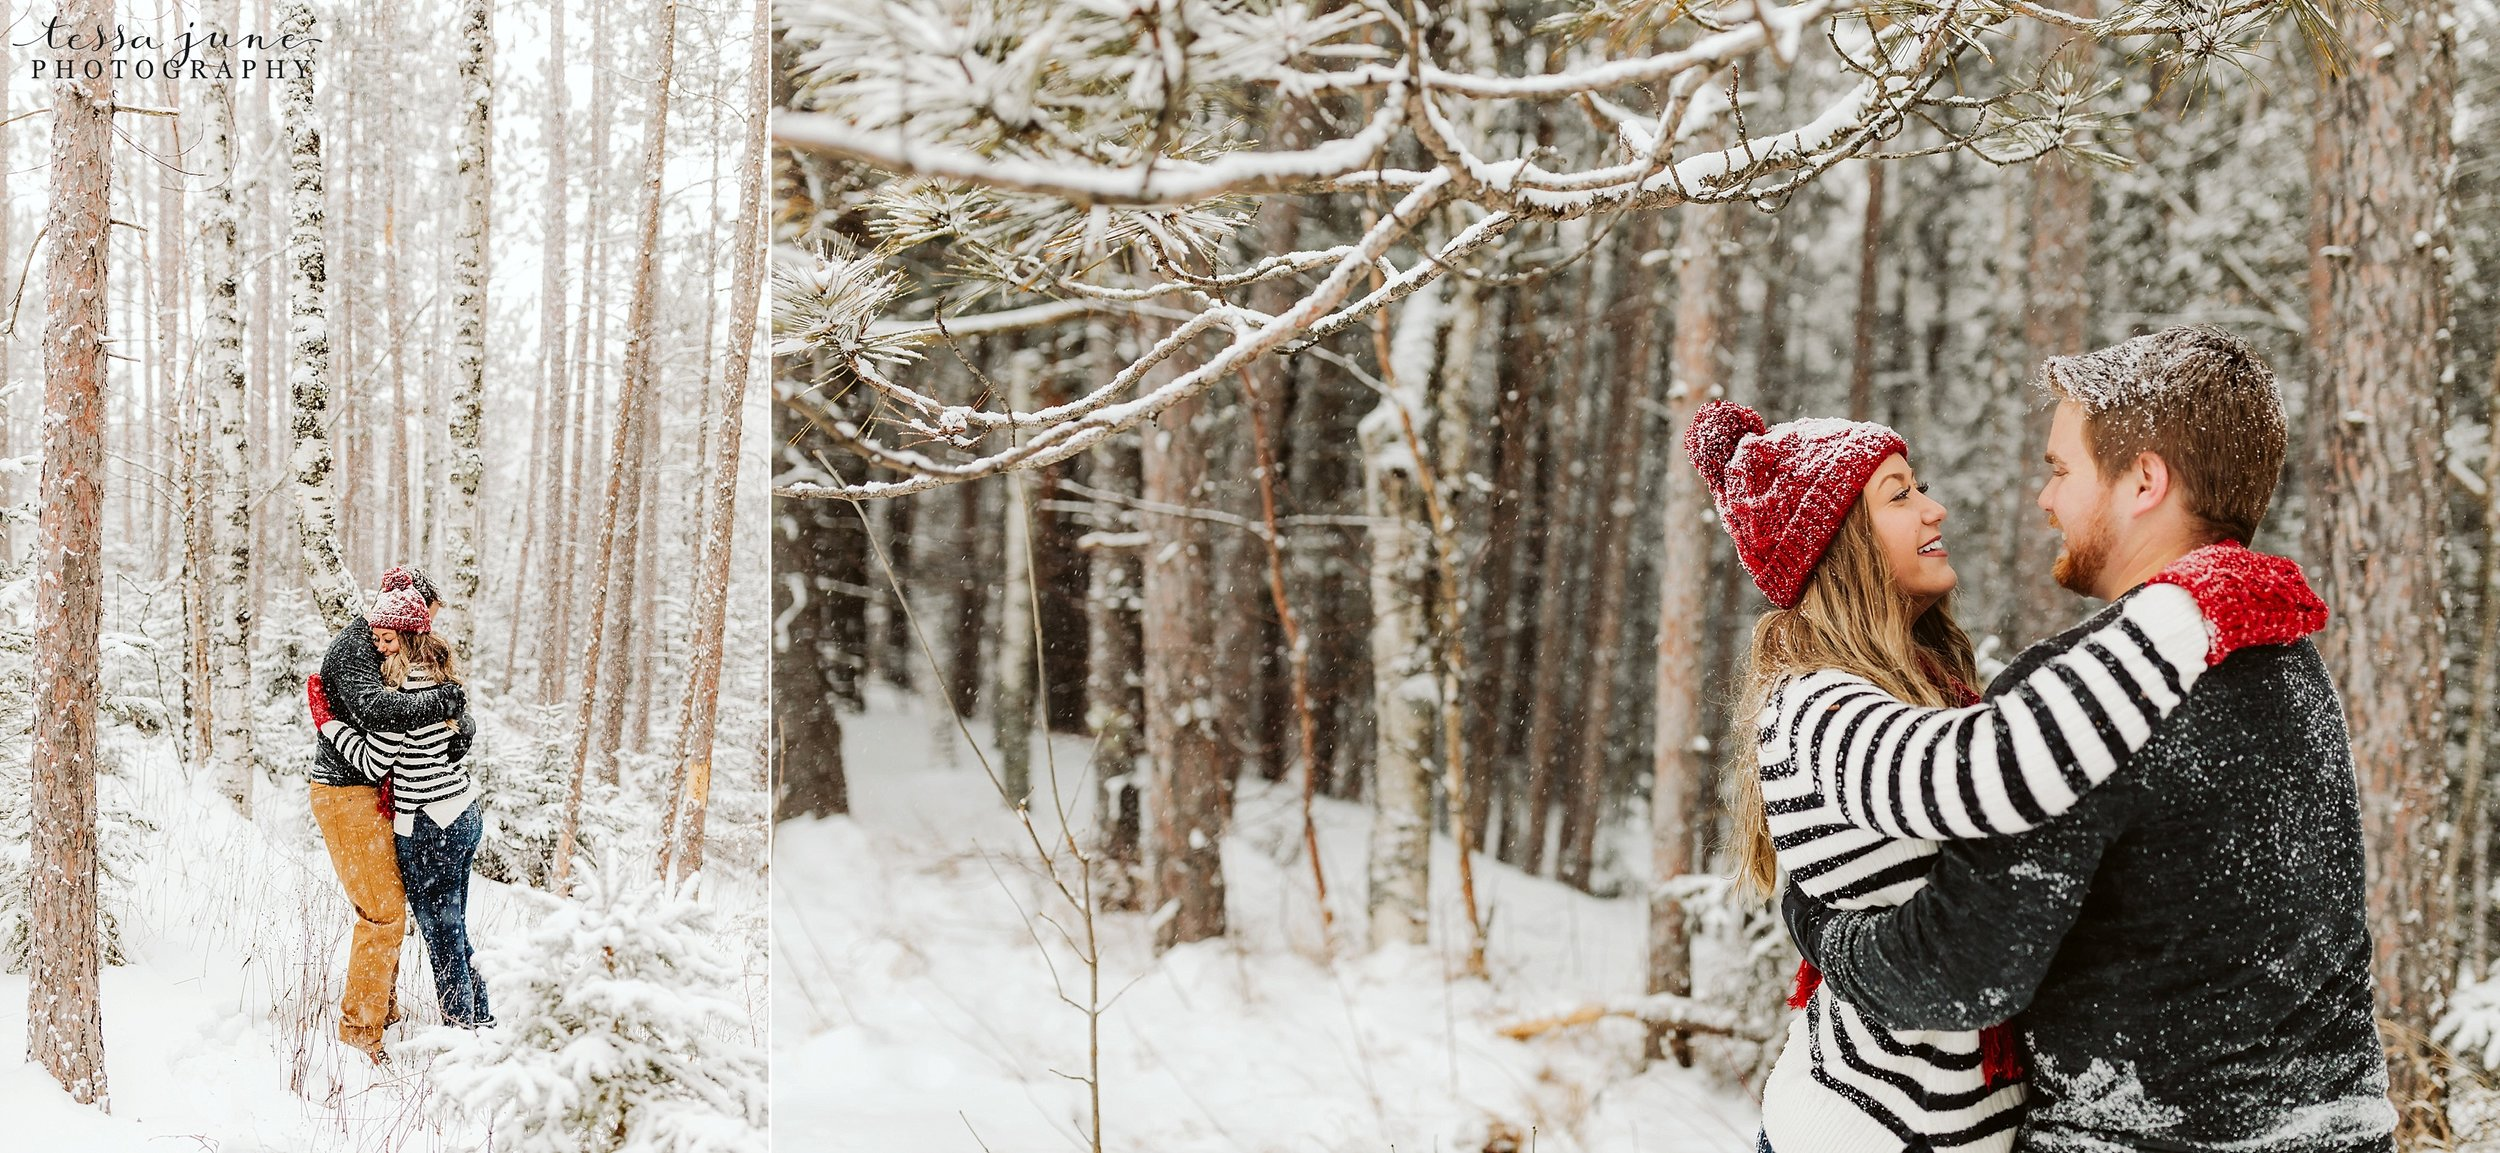 duluth-winter-engagement-forest-photos-during-snow-storm-54.jpg